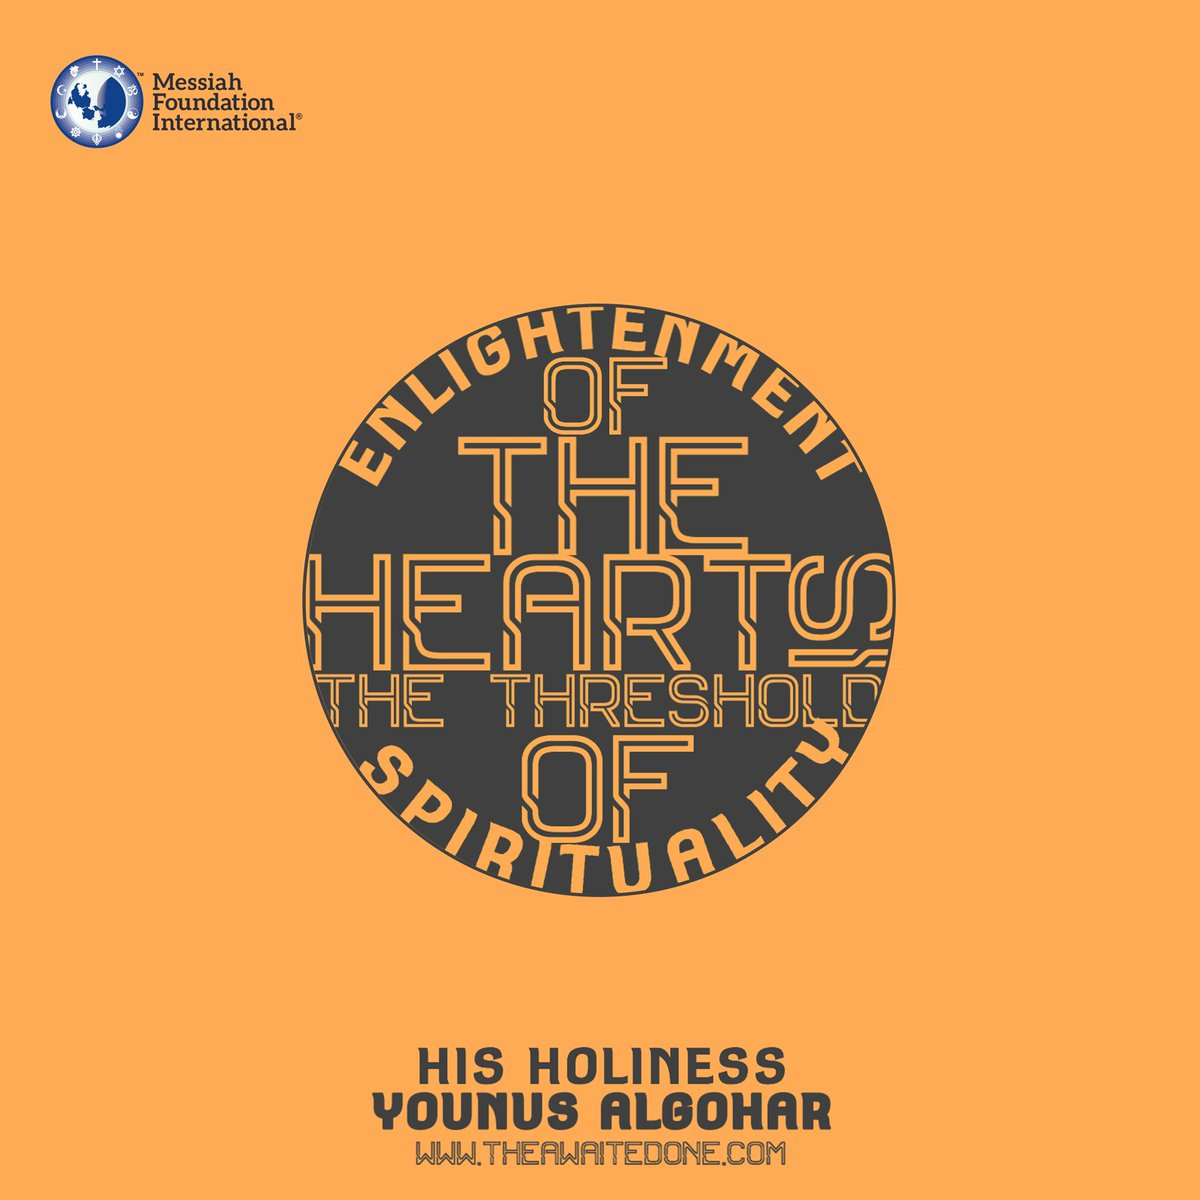 &#39;#Enlightenment of the #heart is the threshold of #spirituality.&#39; - HH Younus AlGohar ( https:// medium.com/@YounusAlGohar /why-lies-are-destroying-society-760aff3f131b &nbsp; … )<br>http://pic.twitter.com/e9gmooWs9X